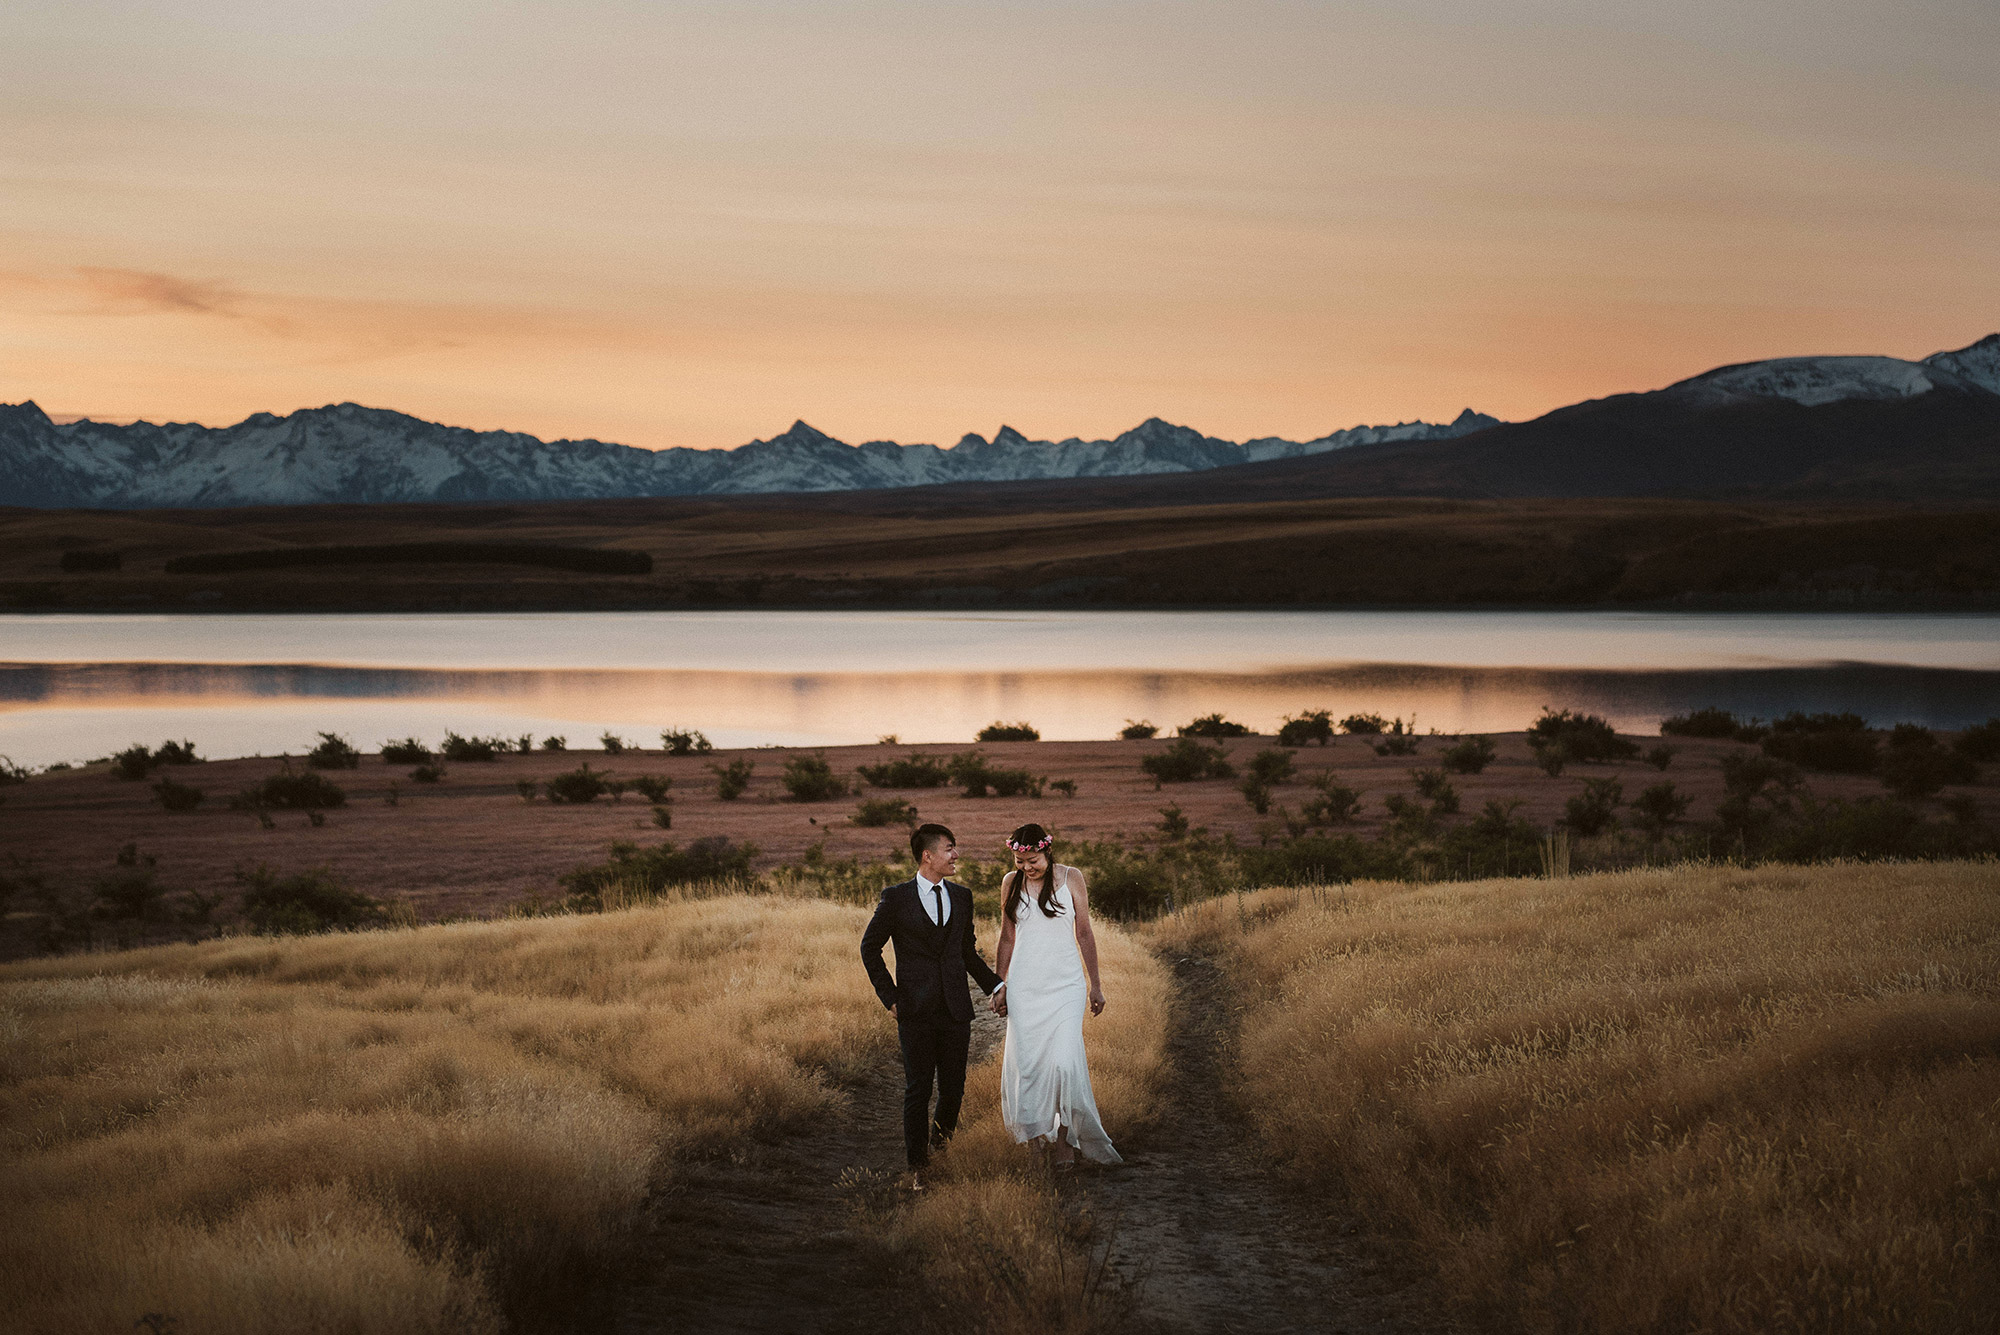 LAKE TEKAPO  A great starting or finishing point for a full day pre-wedding session. Known for its rugged beauty, clear blue waters and epic lupin fields, Lake Tekapo ticks all the boxes for the perfect pre-wedding session.